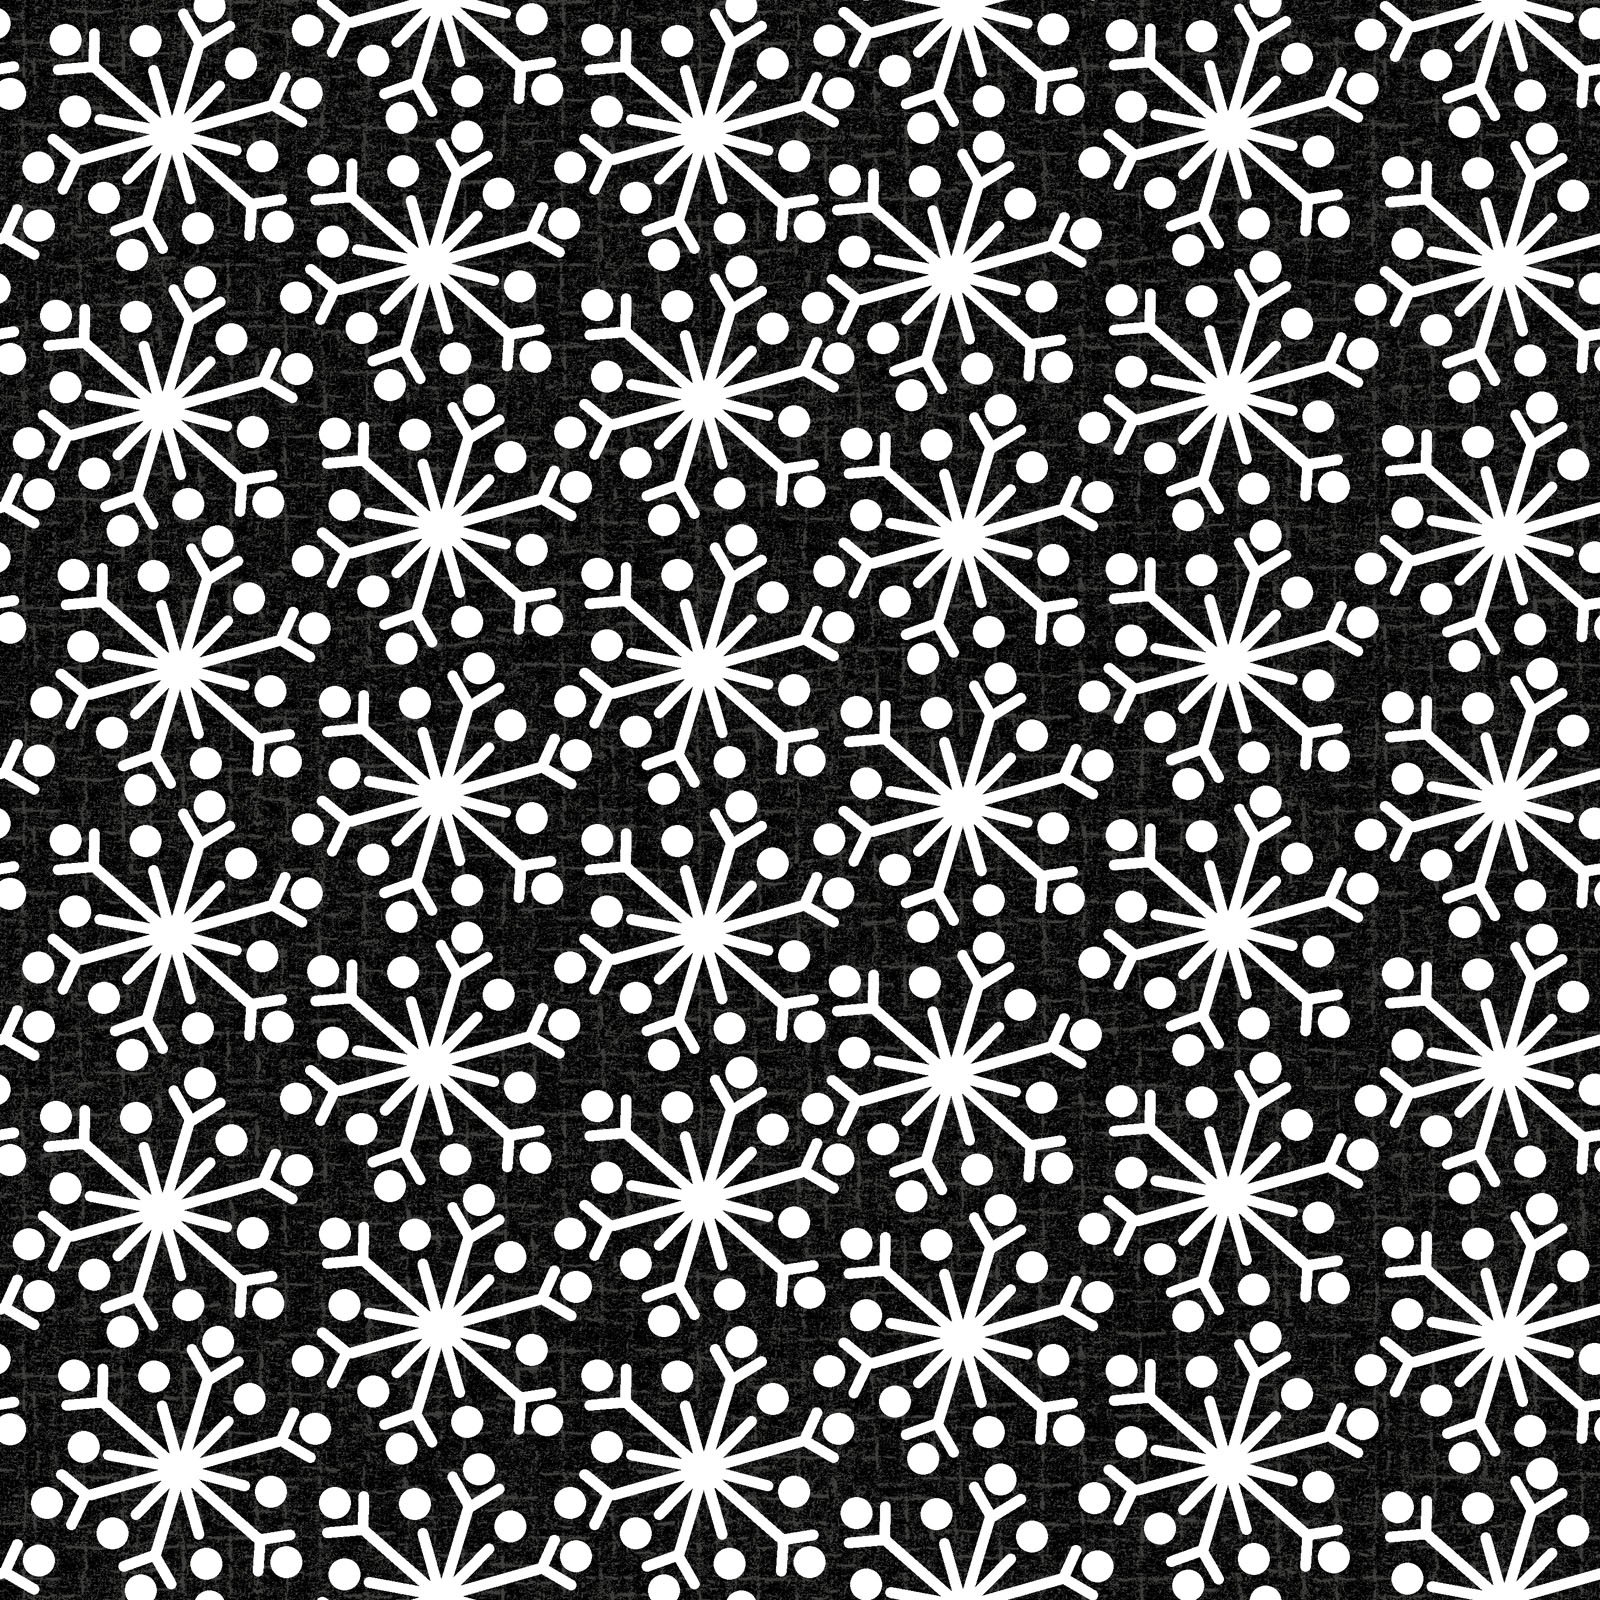 EESC-F9938 JK - SNOWDAYS FLANNEL BY BONNIE SULLIVAN SNOWFLAKE CHARCOAL - ARRIVING IN AUGUST 2021